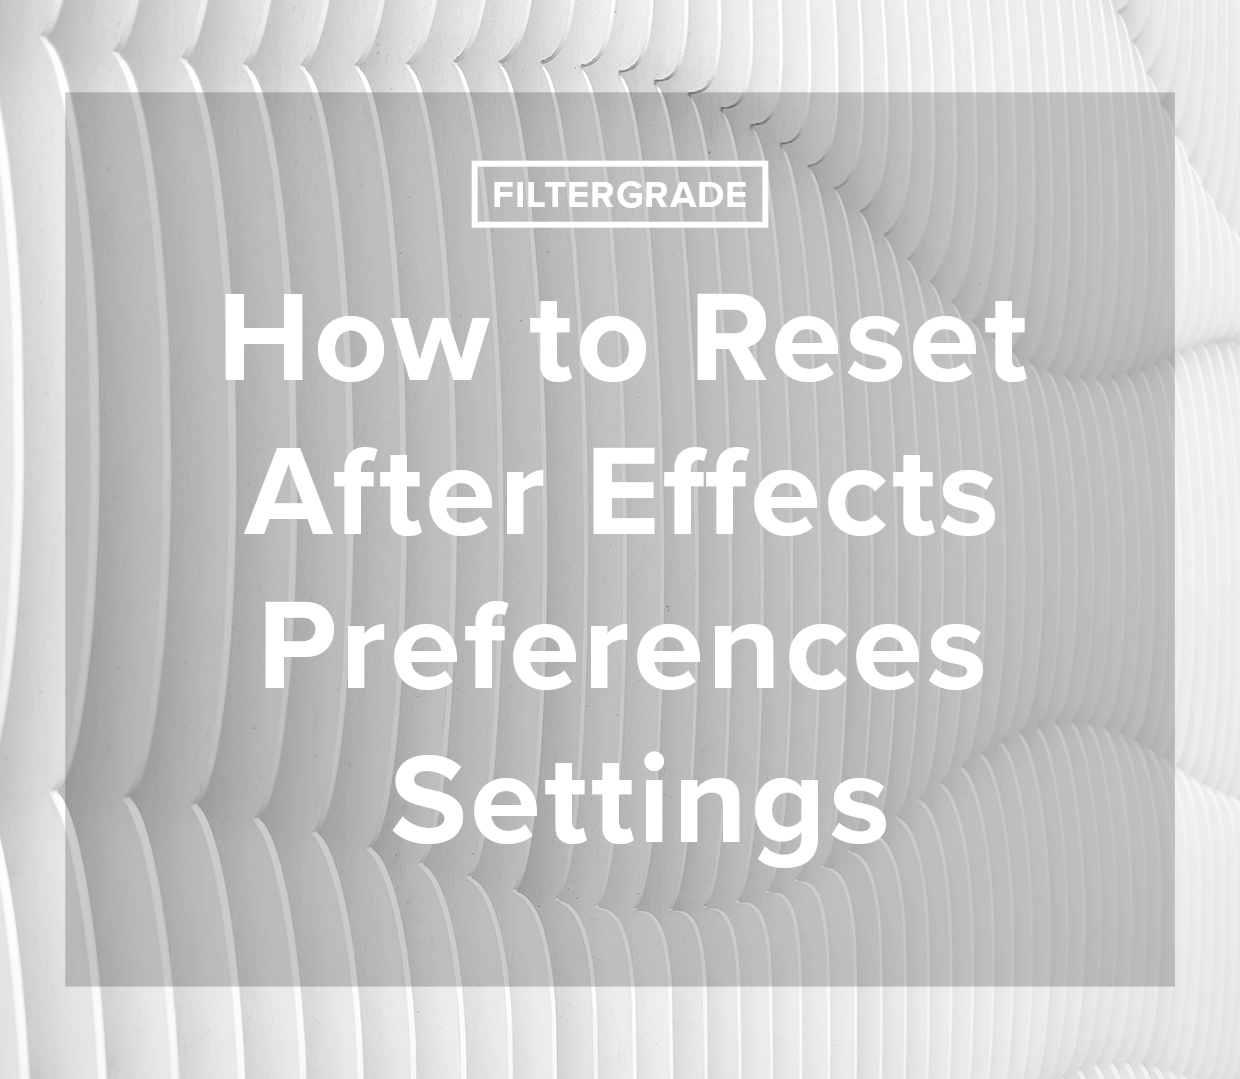 How to Reset After Effects Preferences Settings - FilterGrade